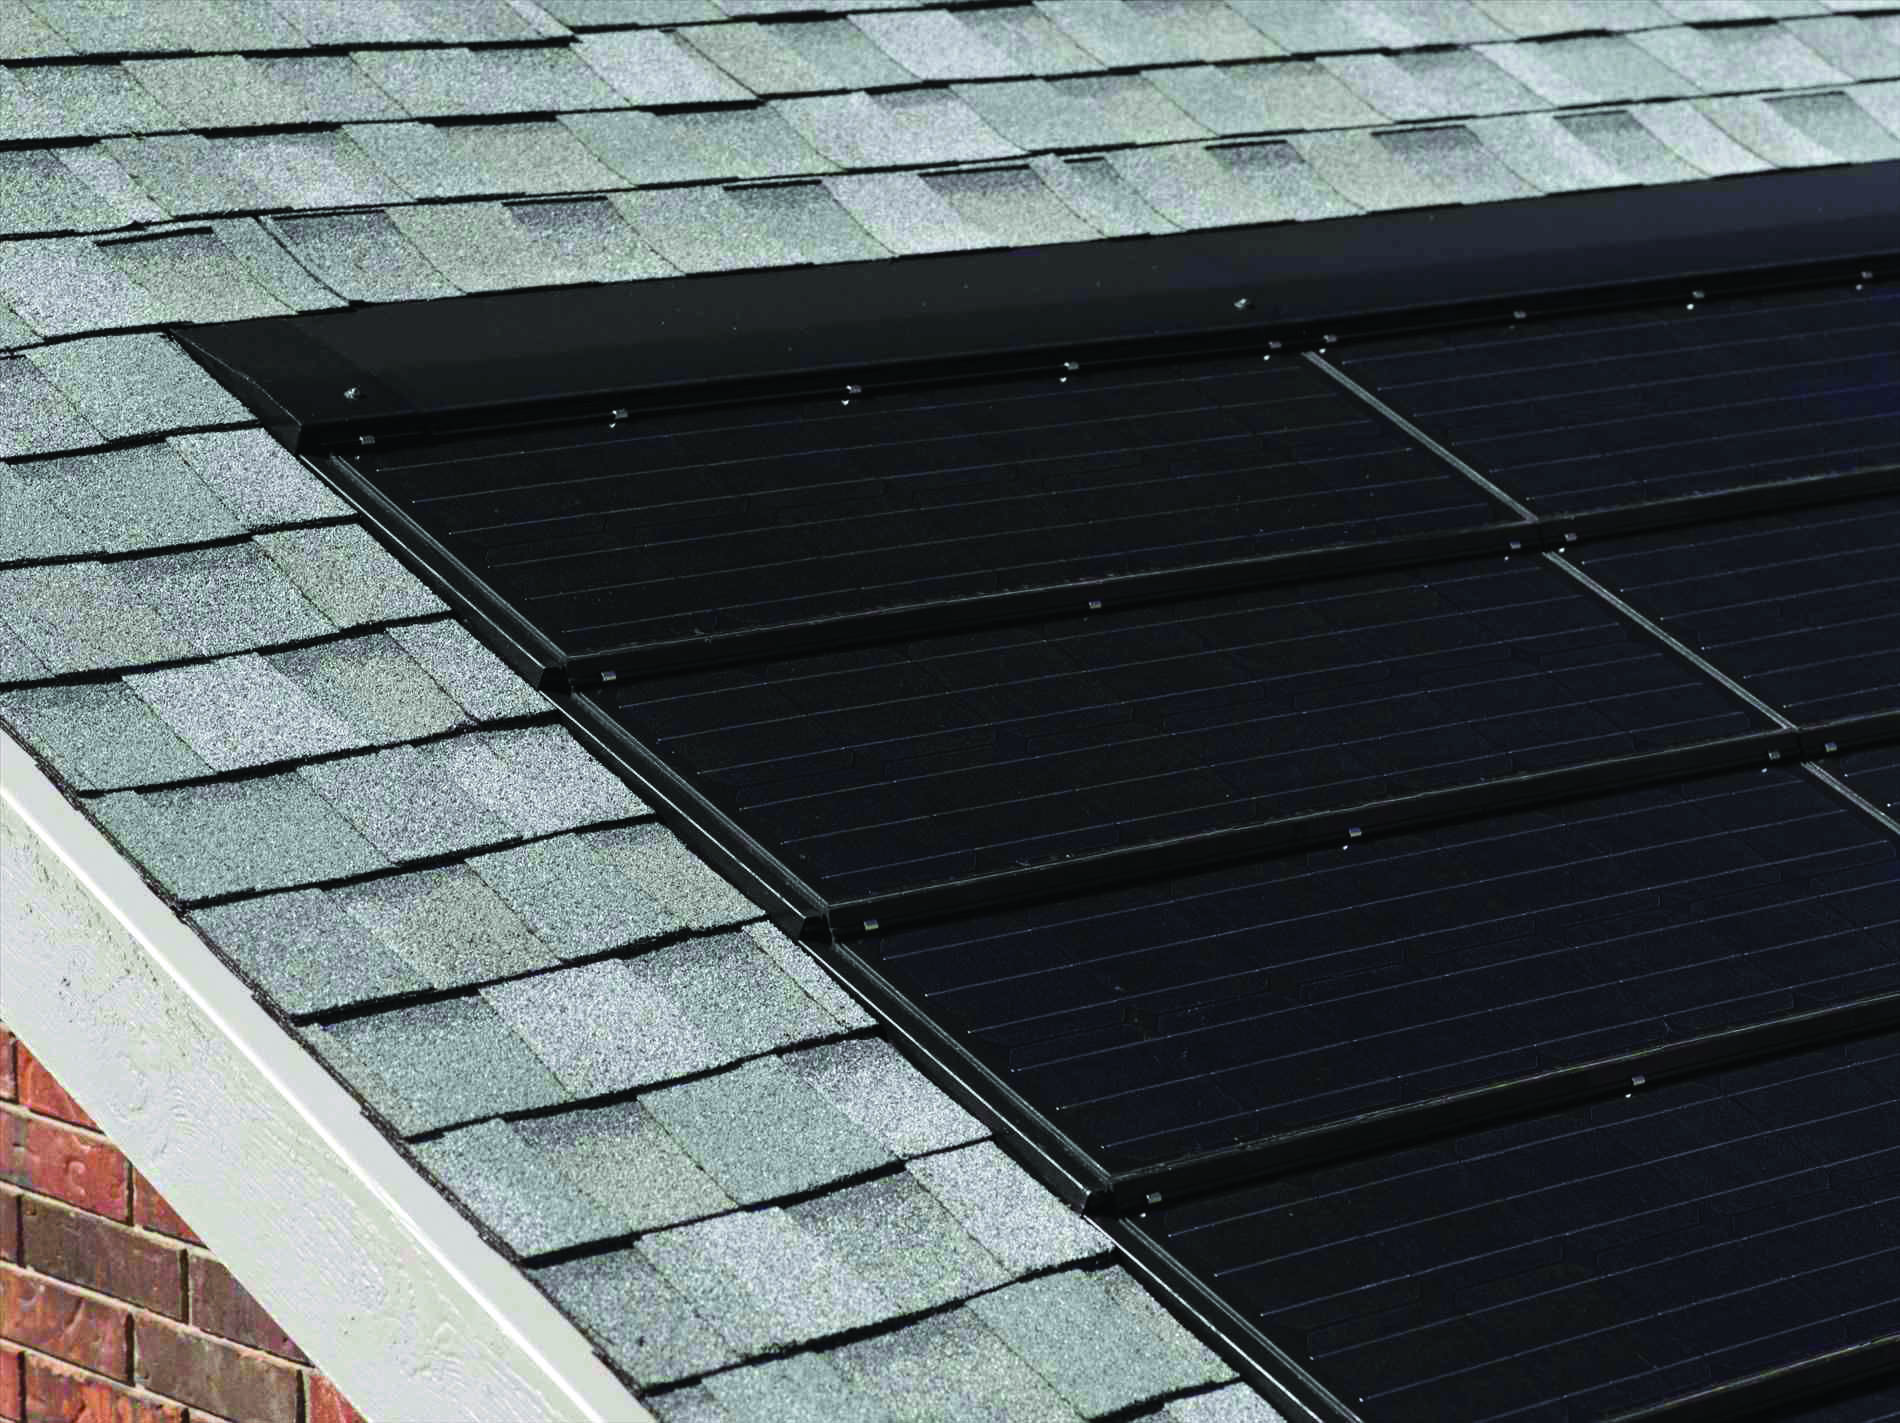 Conveniences And Drawbacks Of Solar Roof Tiles That You Need To Understand About Solar Panels Solar Roof Tiles Best Solar Panels